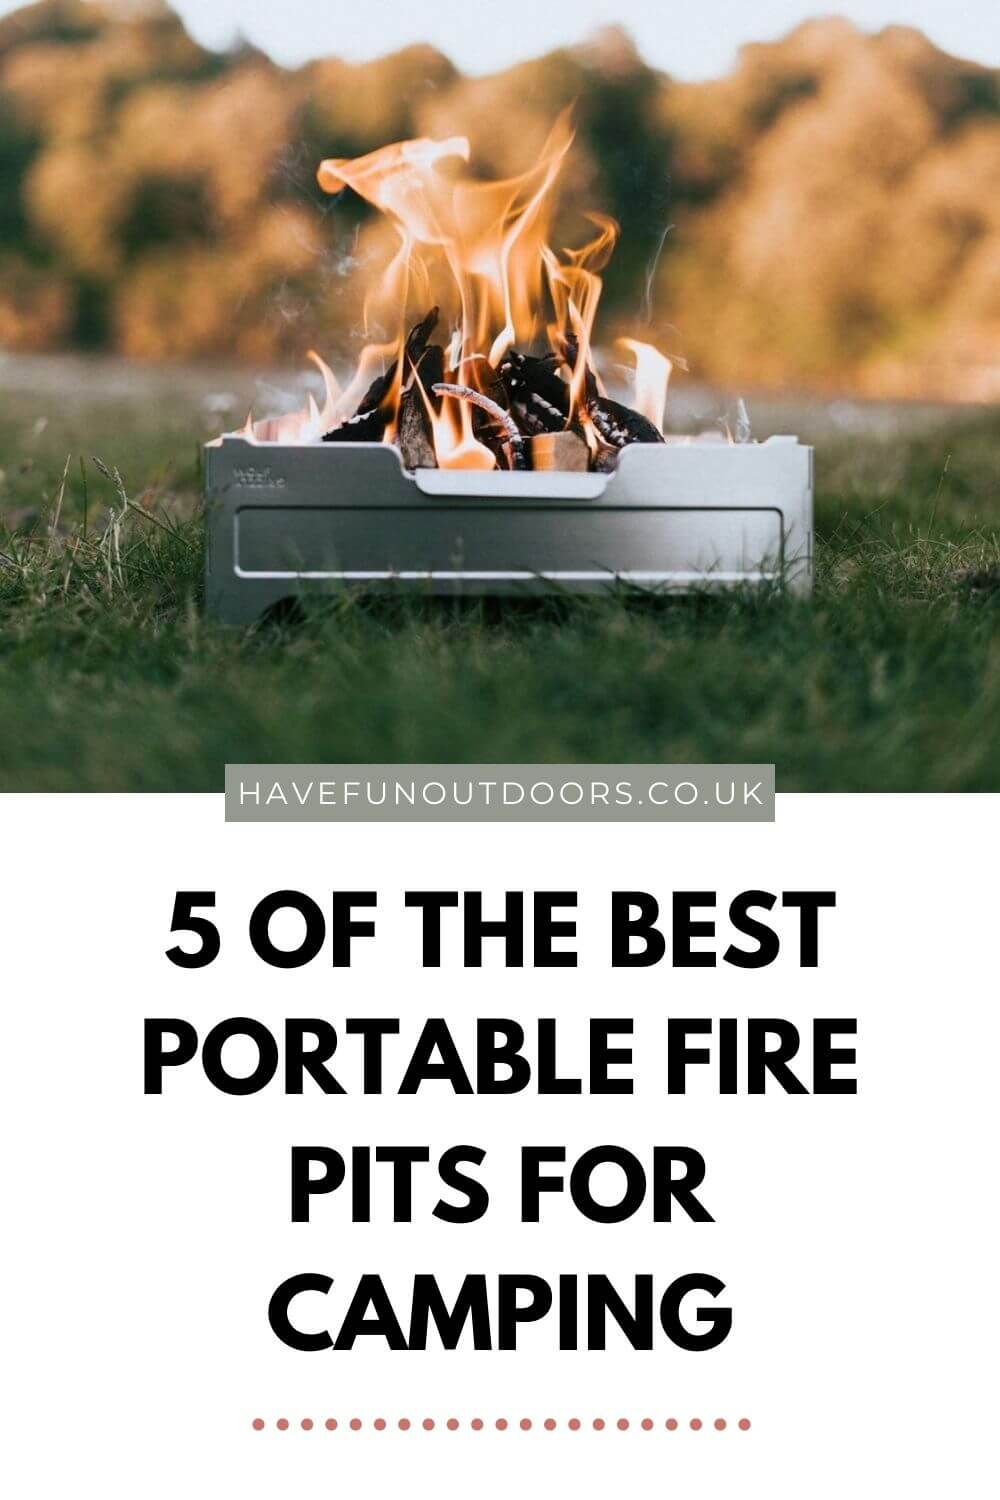 Best Portable Fire Pits For Camping, Hiking Or Days Out